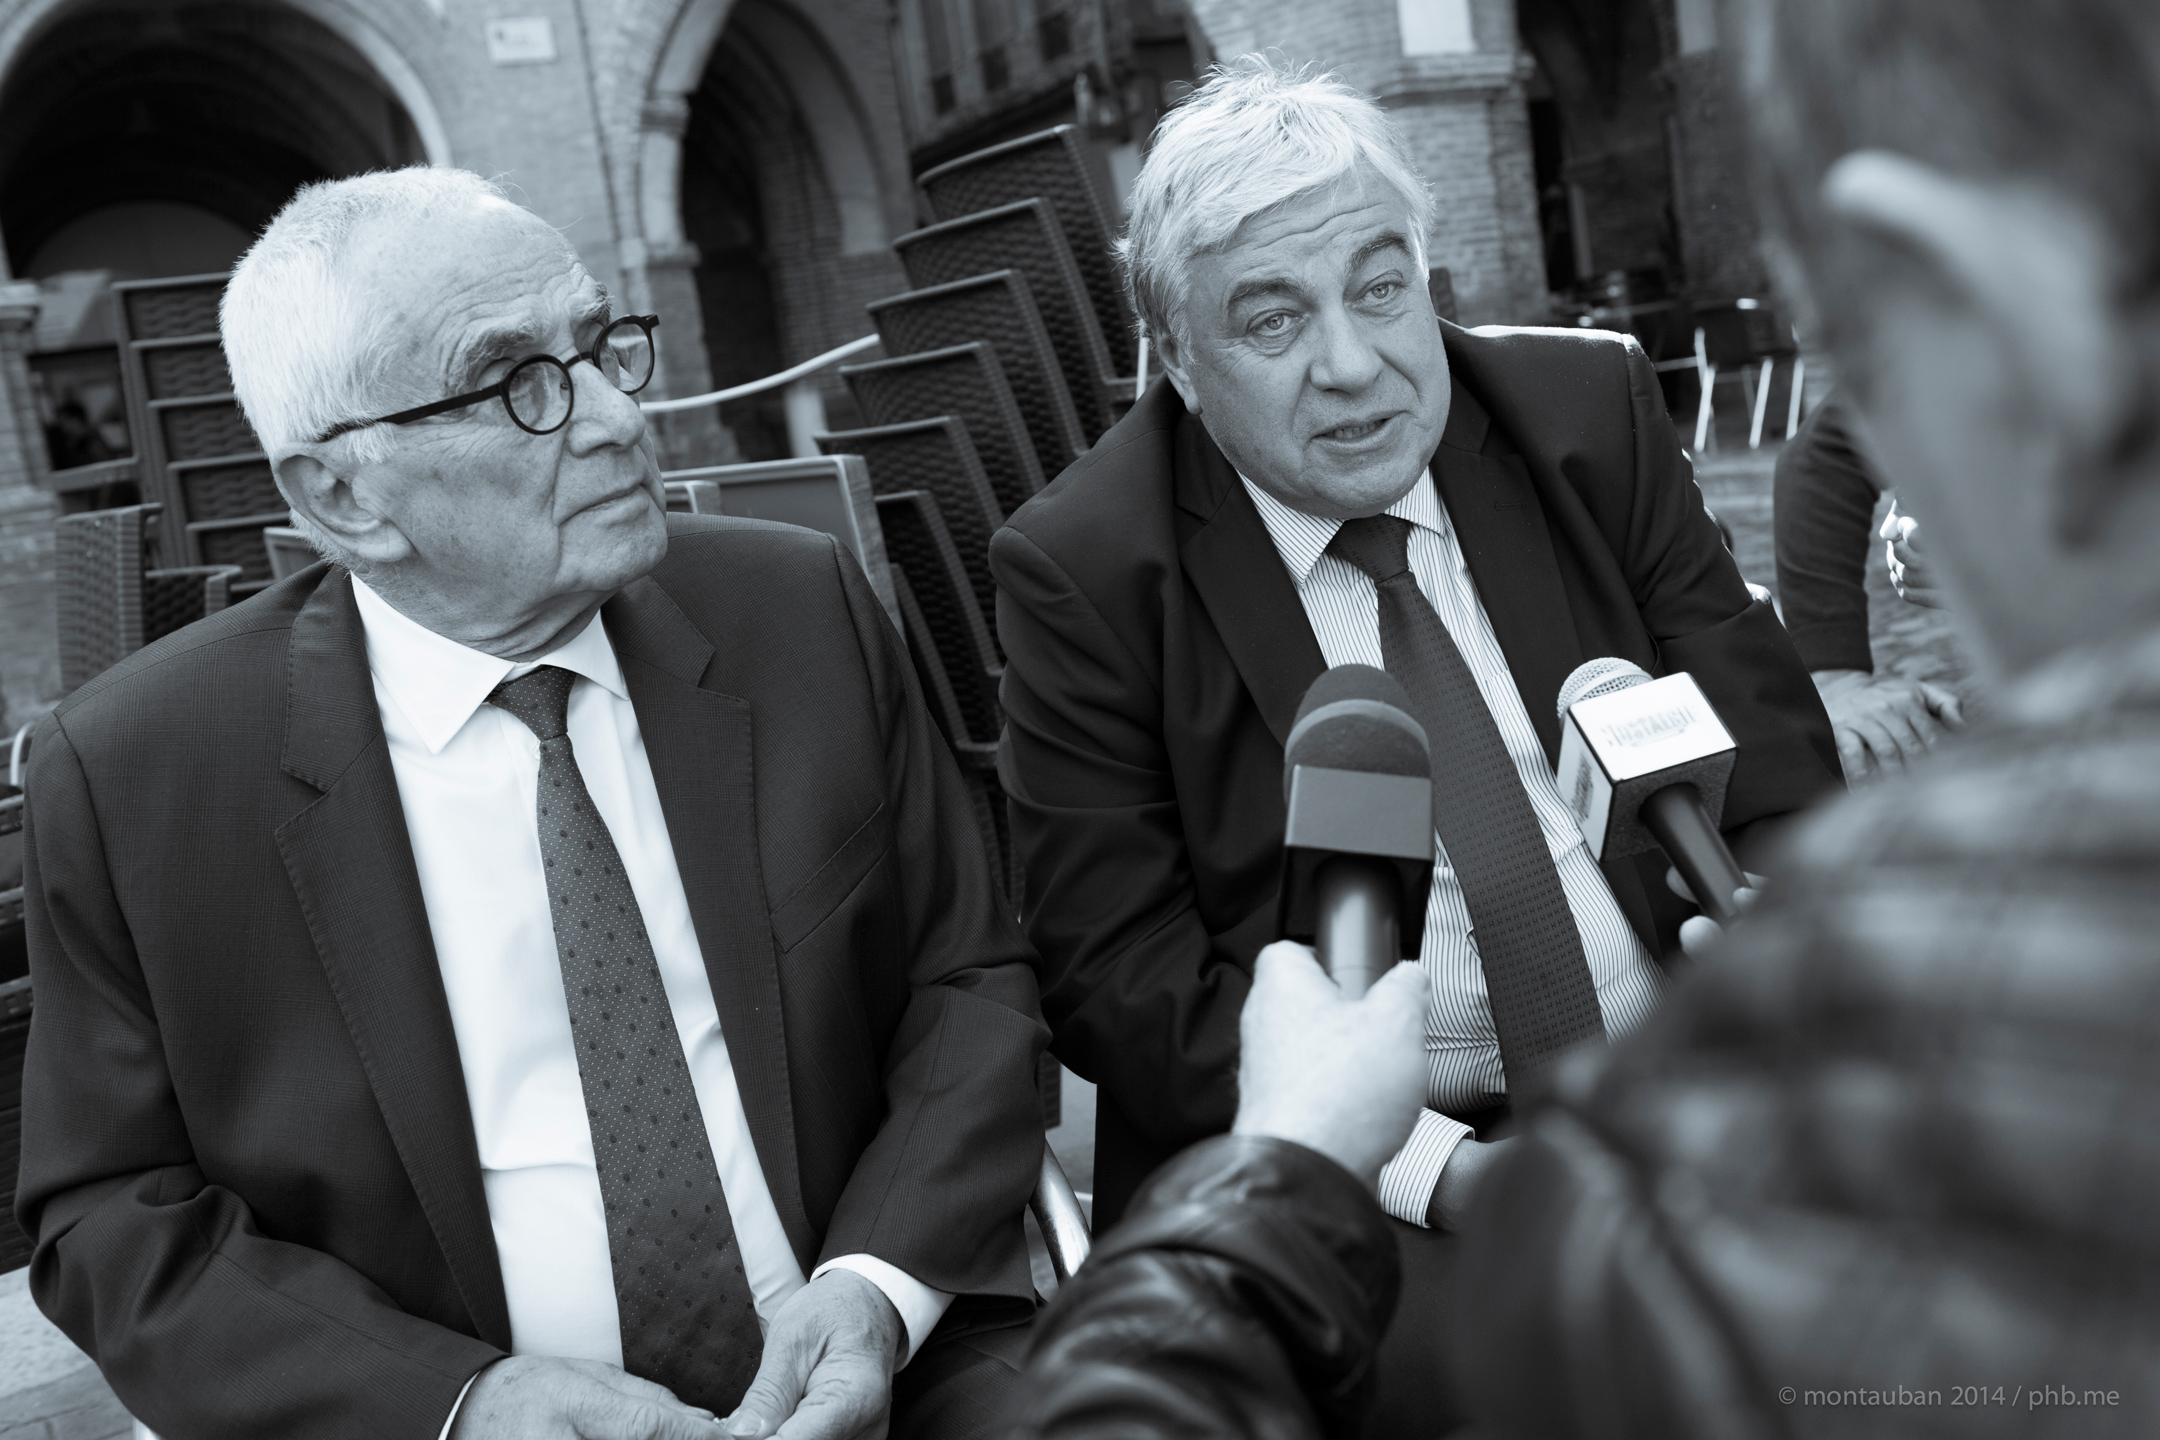 conference-presse-Montauban-2014-Malvy-Garrigues-IMG_1927-2